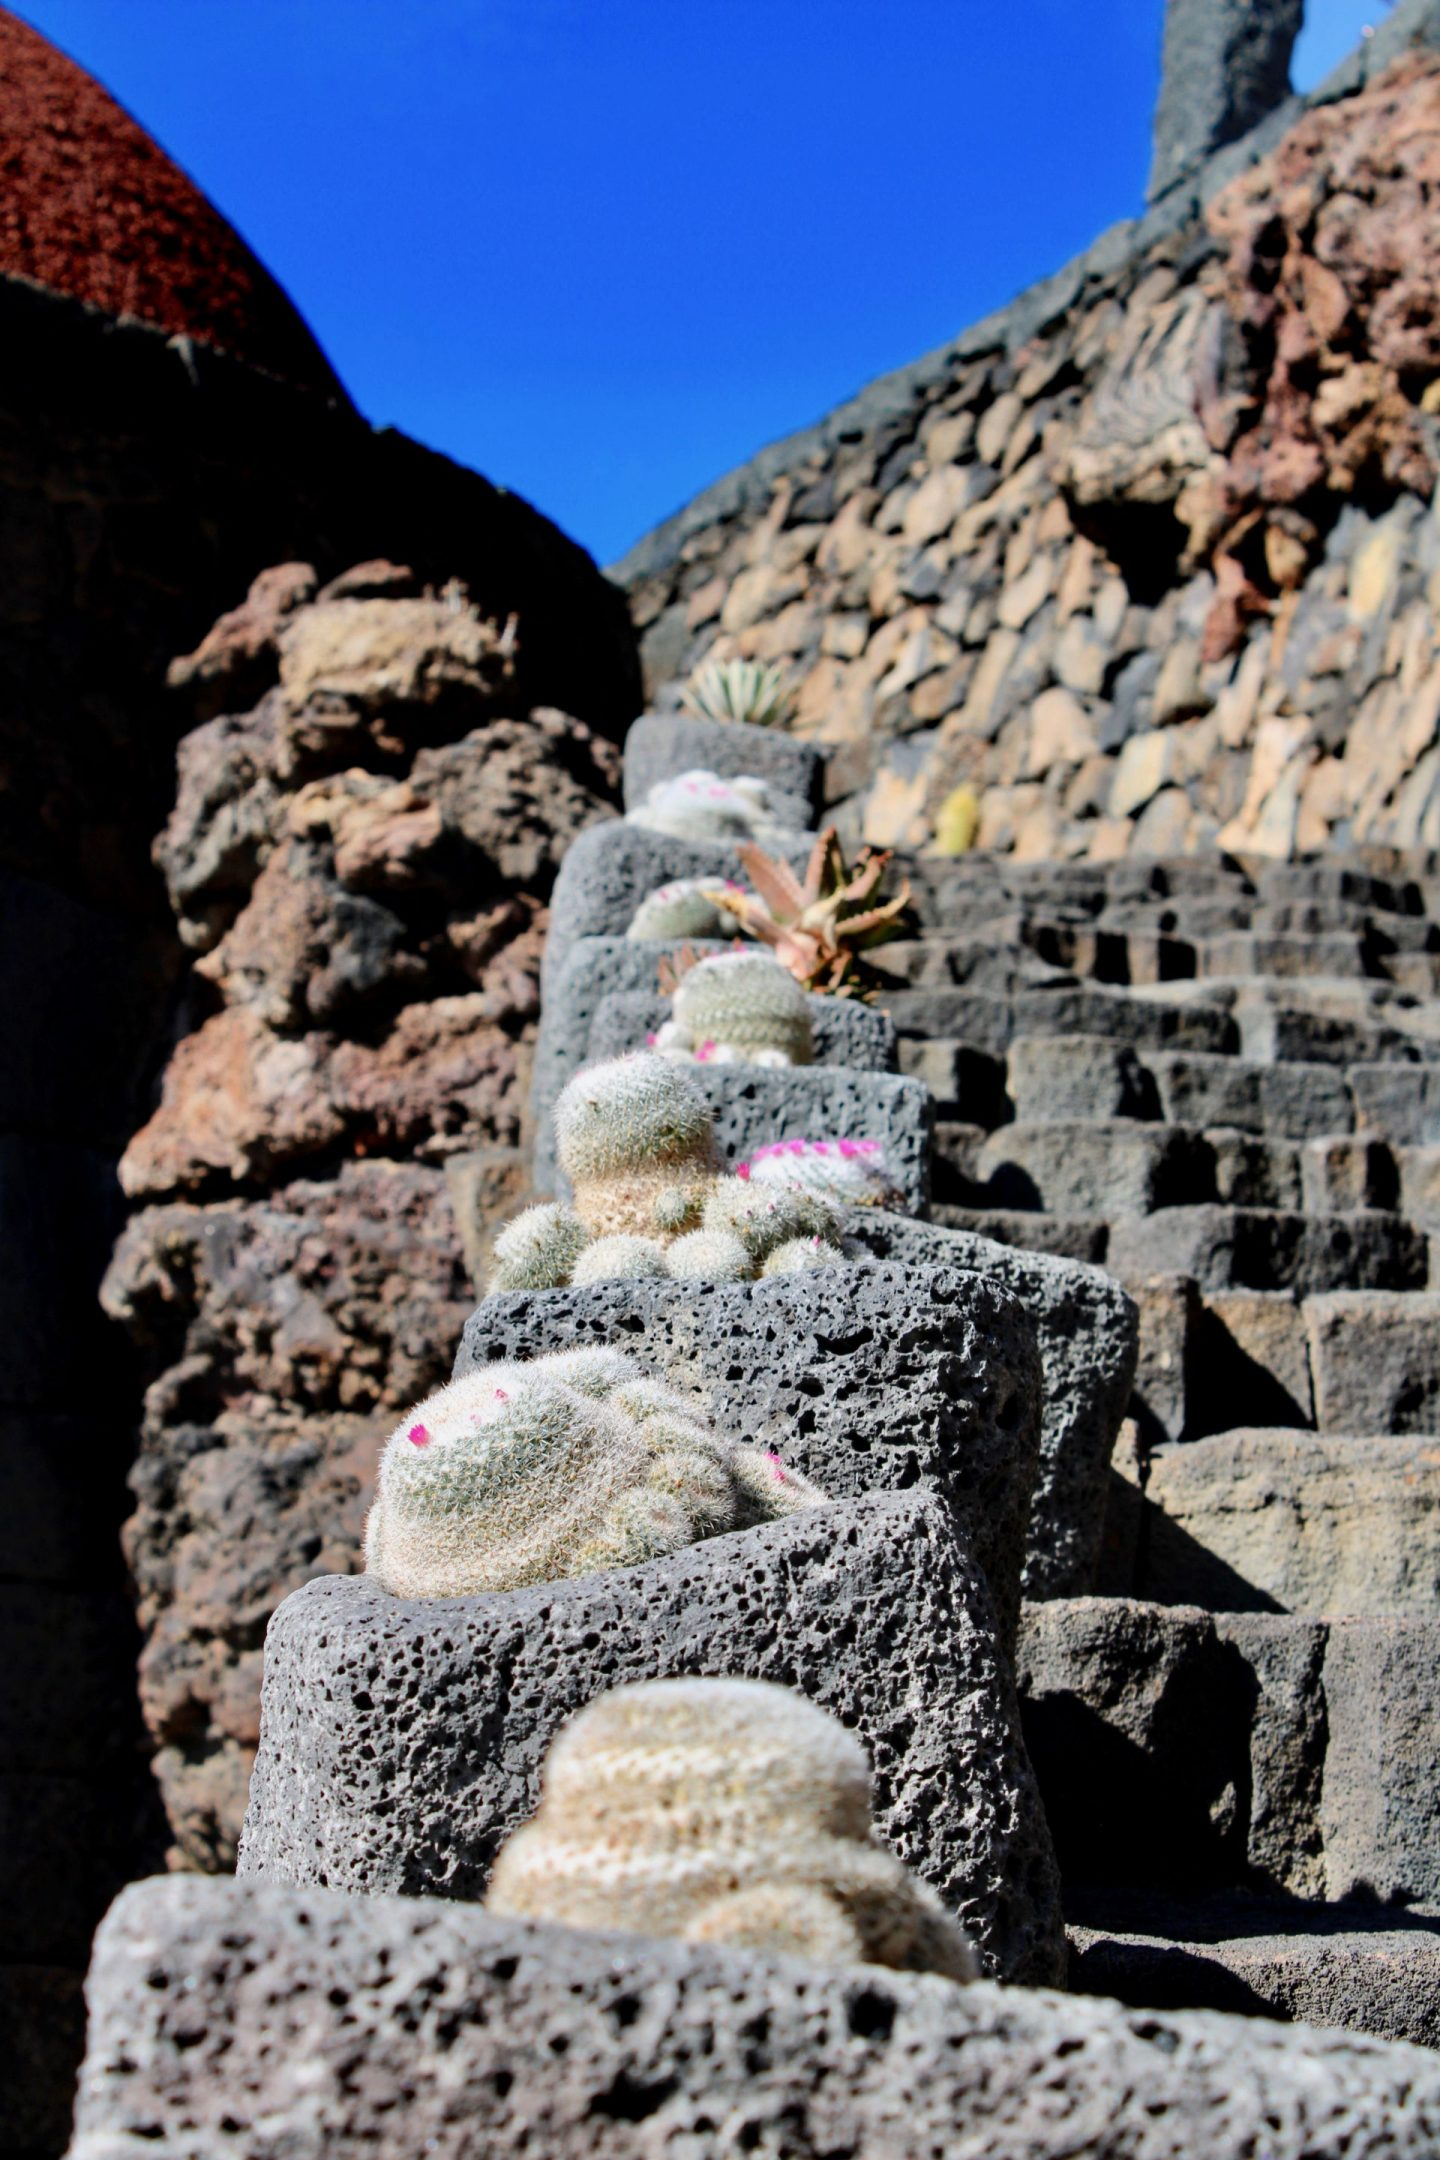 Jardin de Cactus, one of the things to do in Lanzarote. Image shows stone steps with a variety of small cacti up the sides.